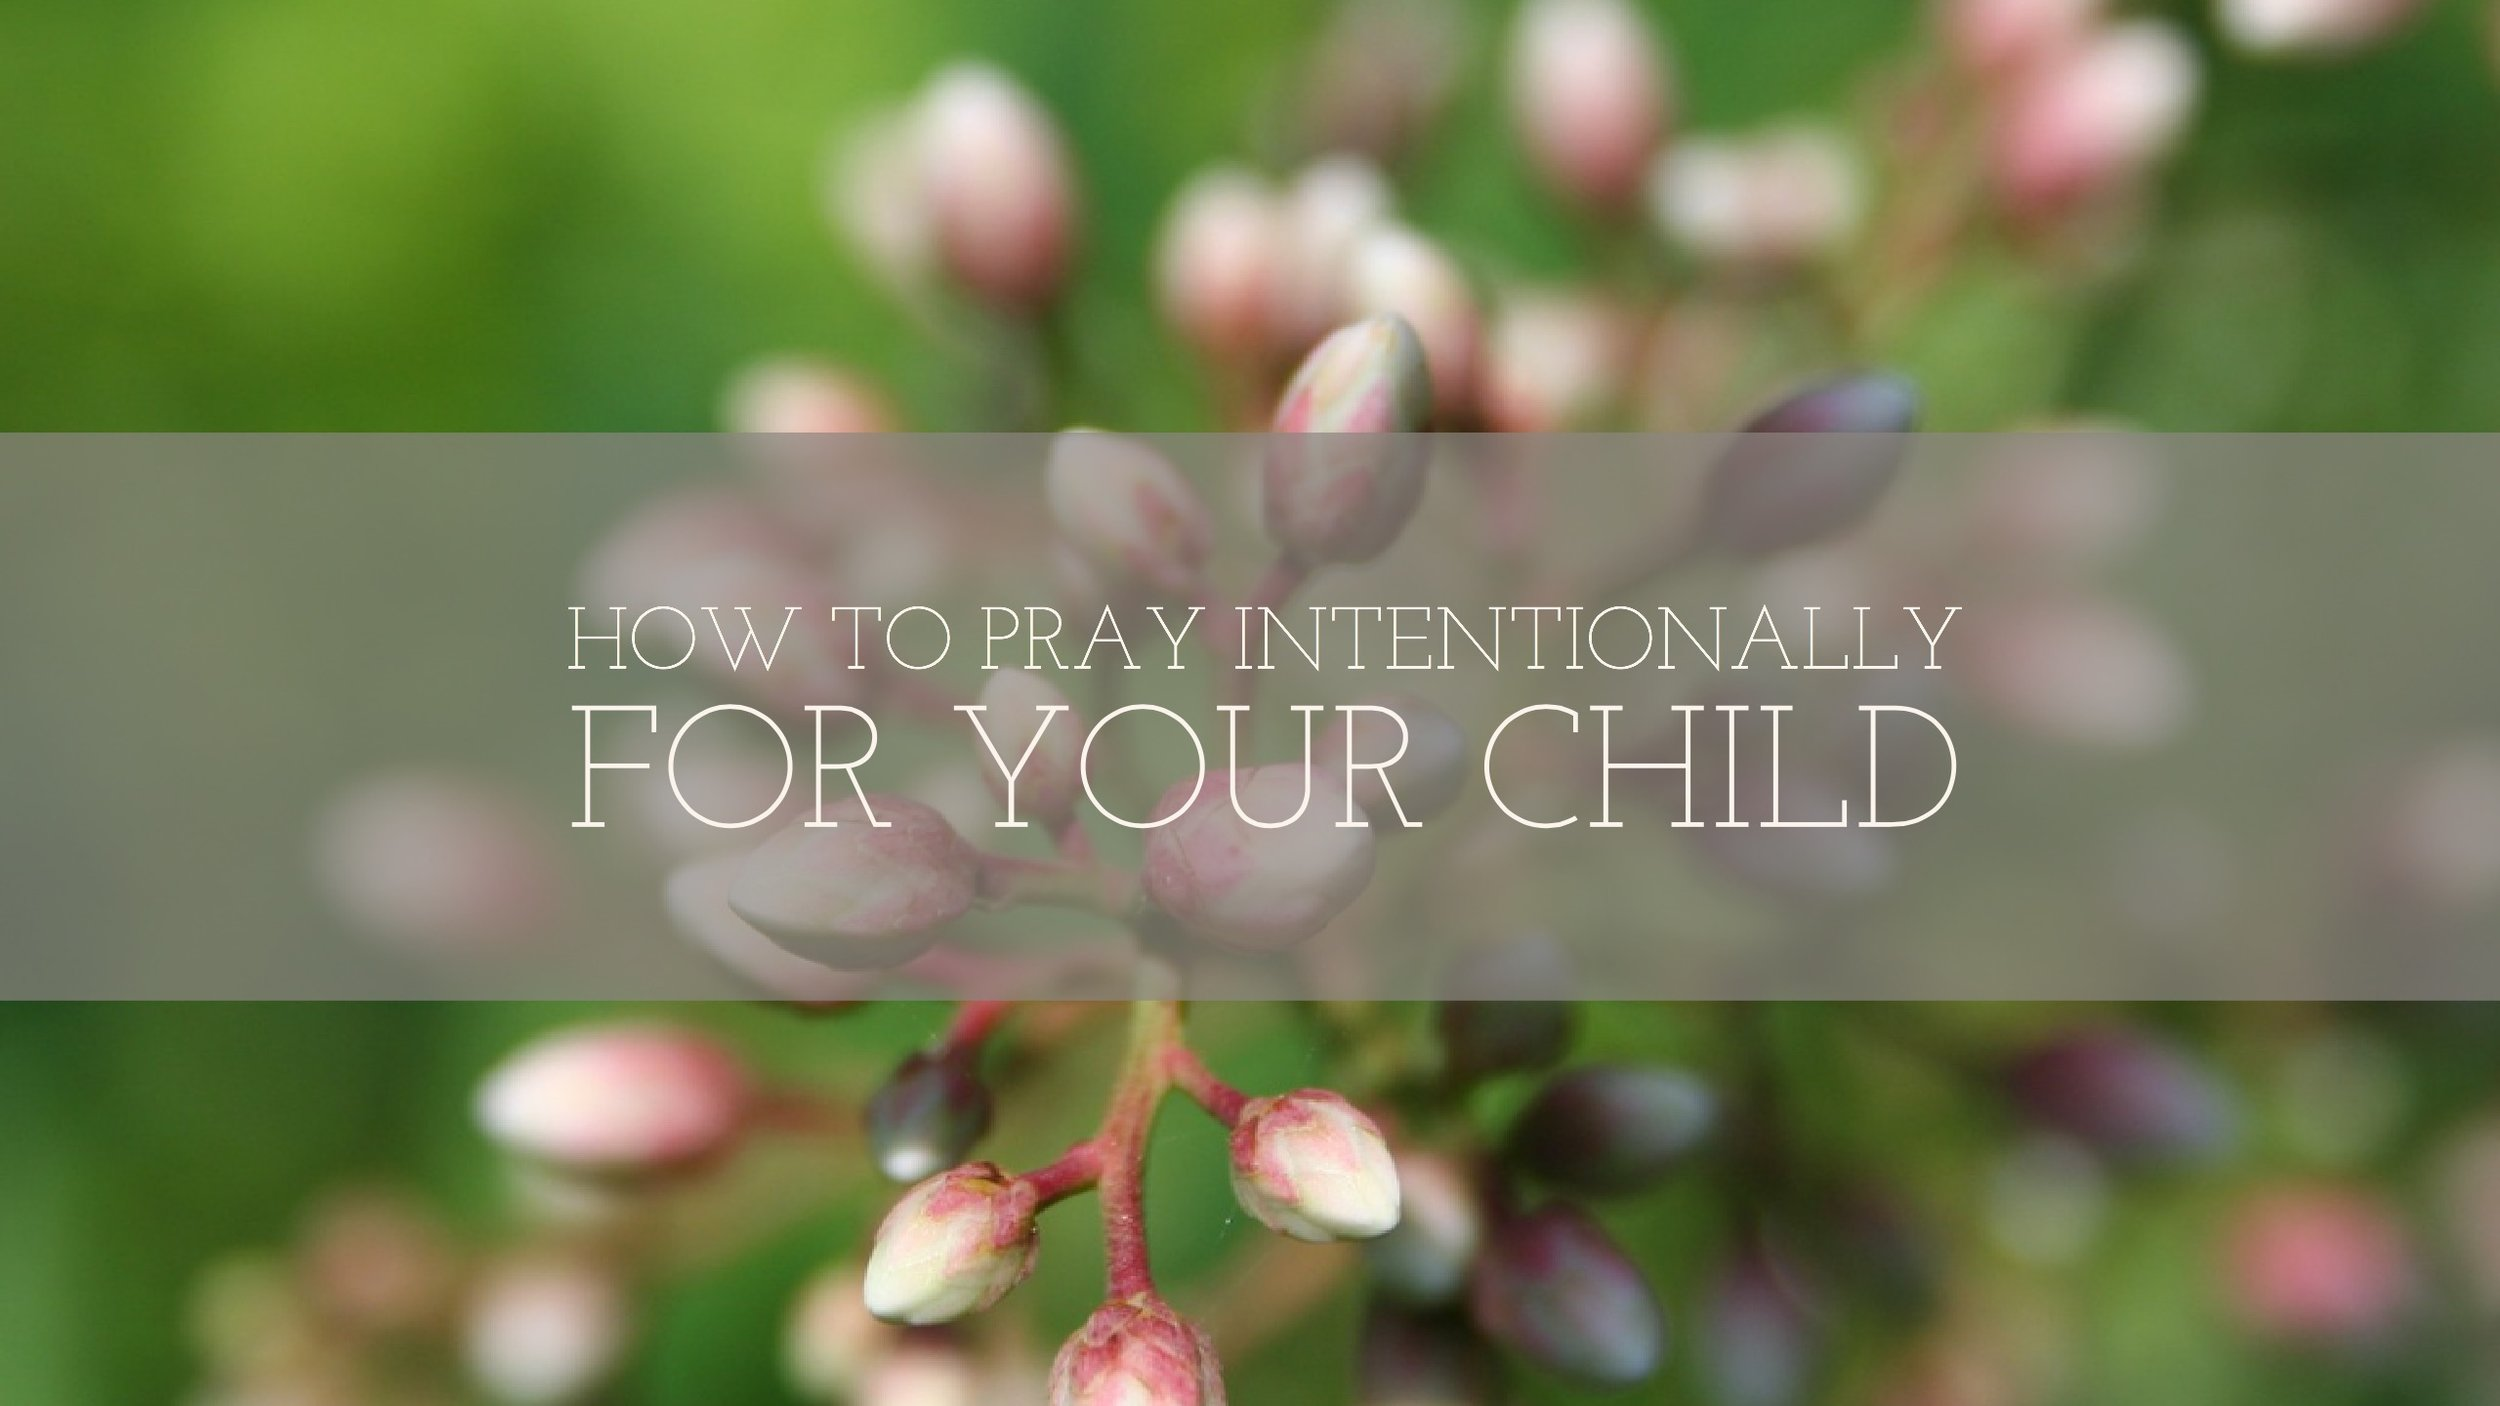 http://www.intentionalprayercards.com/praying-intentionally-for-your-child